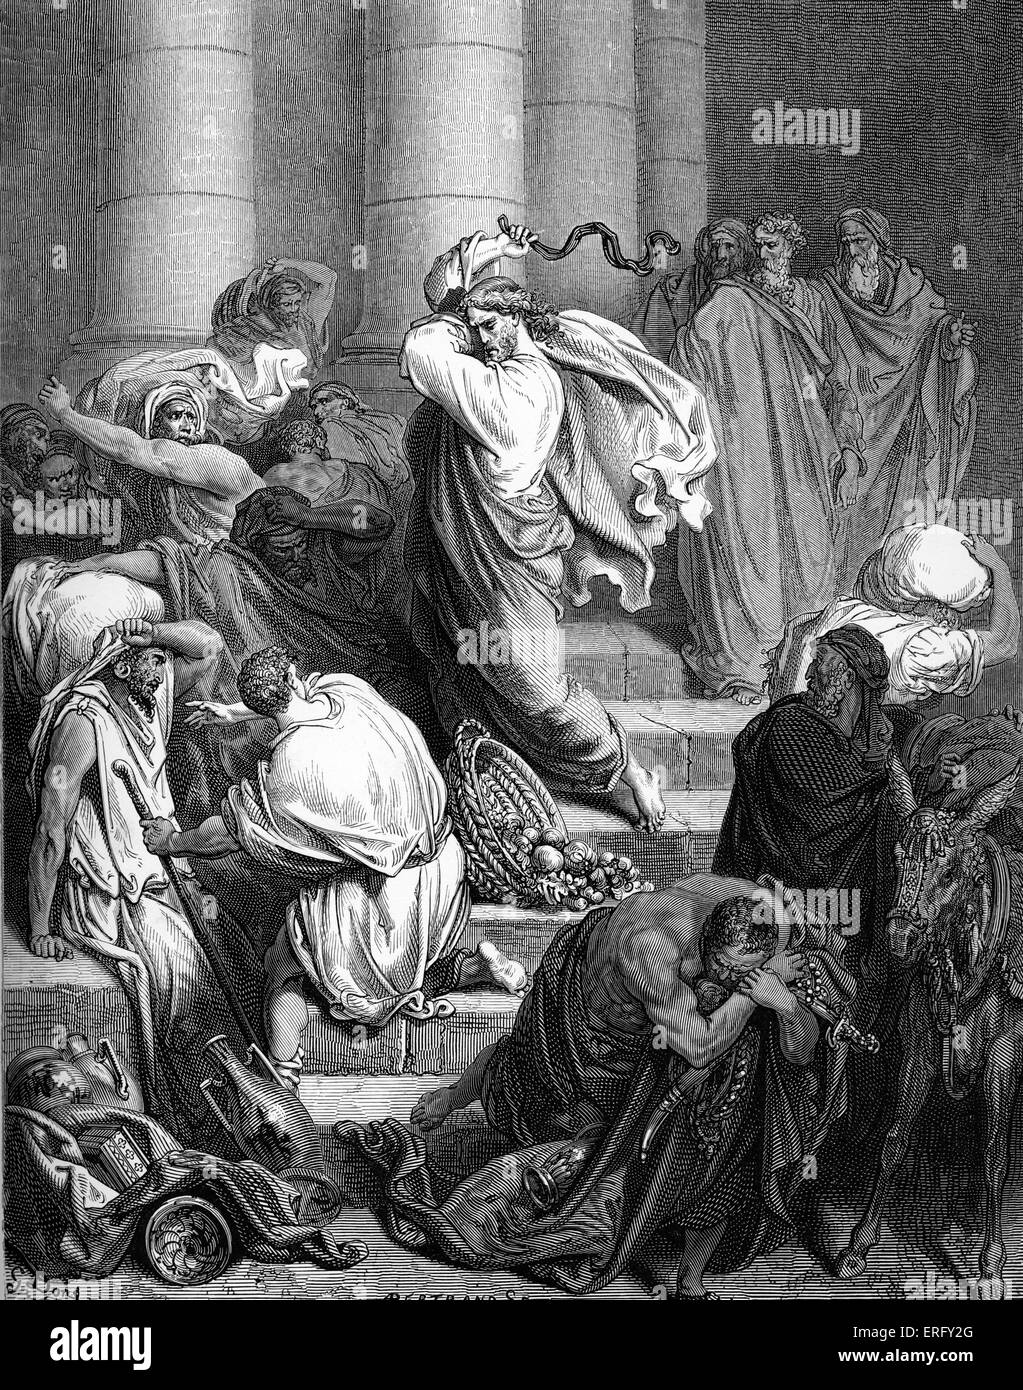 Jesus clears the buyers and sellers out of the temple: 'And he went into the temple, and began to cast out them - Stock Image